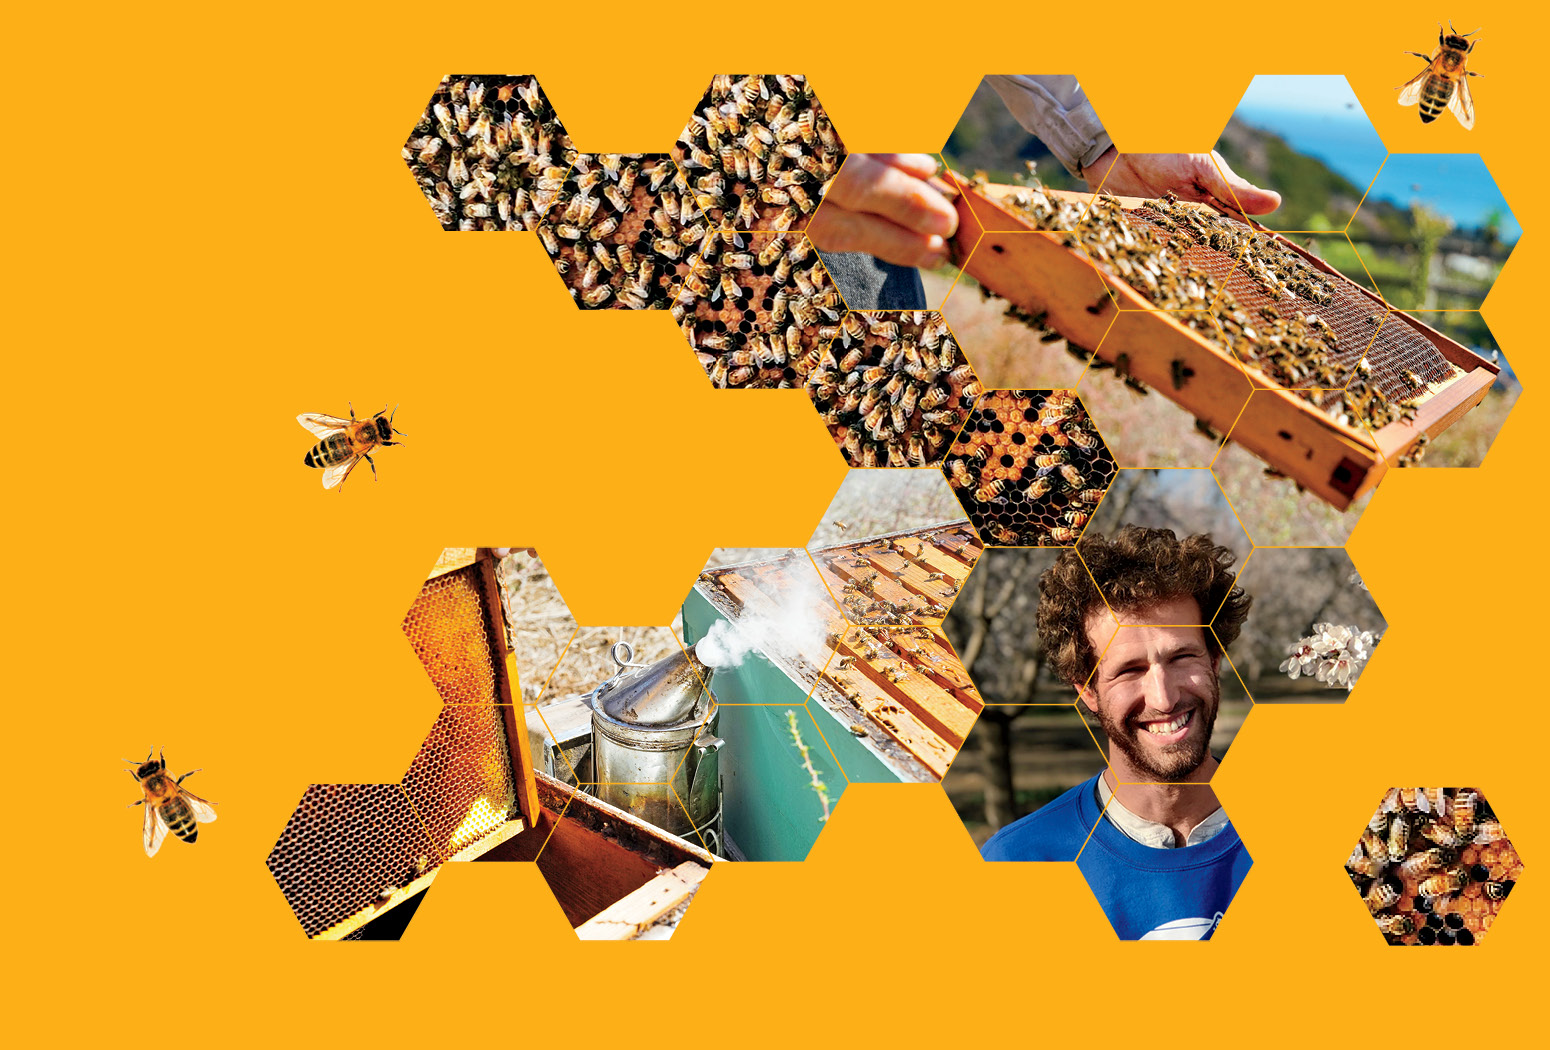 Photo collage of Eli Lichter-Marck, bees, and beehives